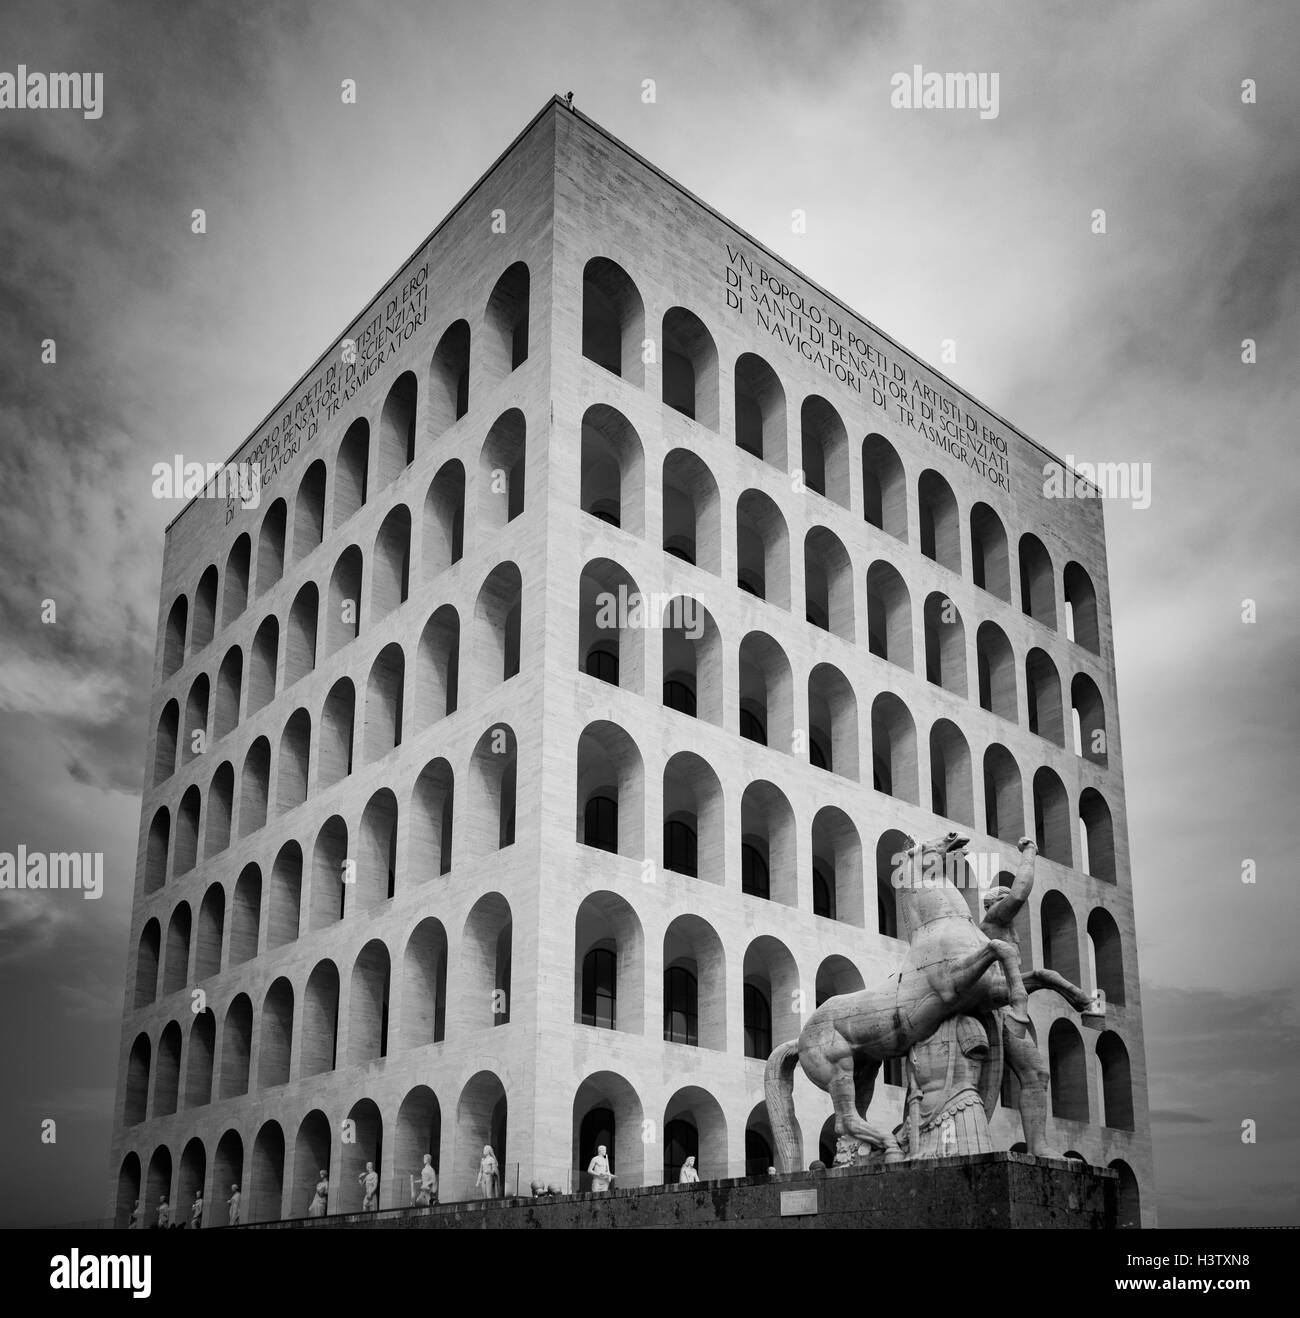 The Palazzo della Civiltà Italiana is an icon of Fascist architecture in the EUR part of Rome, Italy - Stock Image